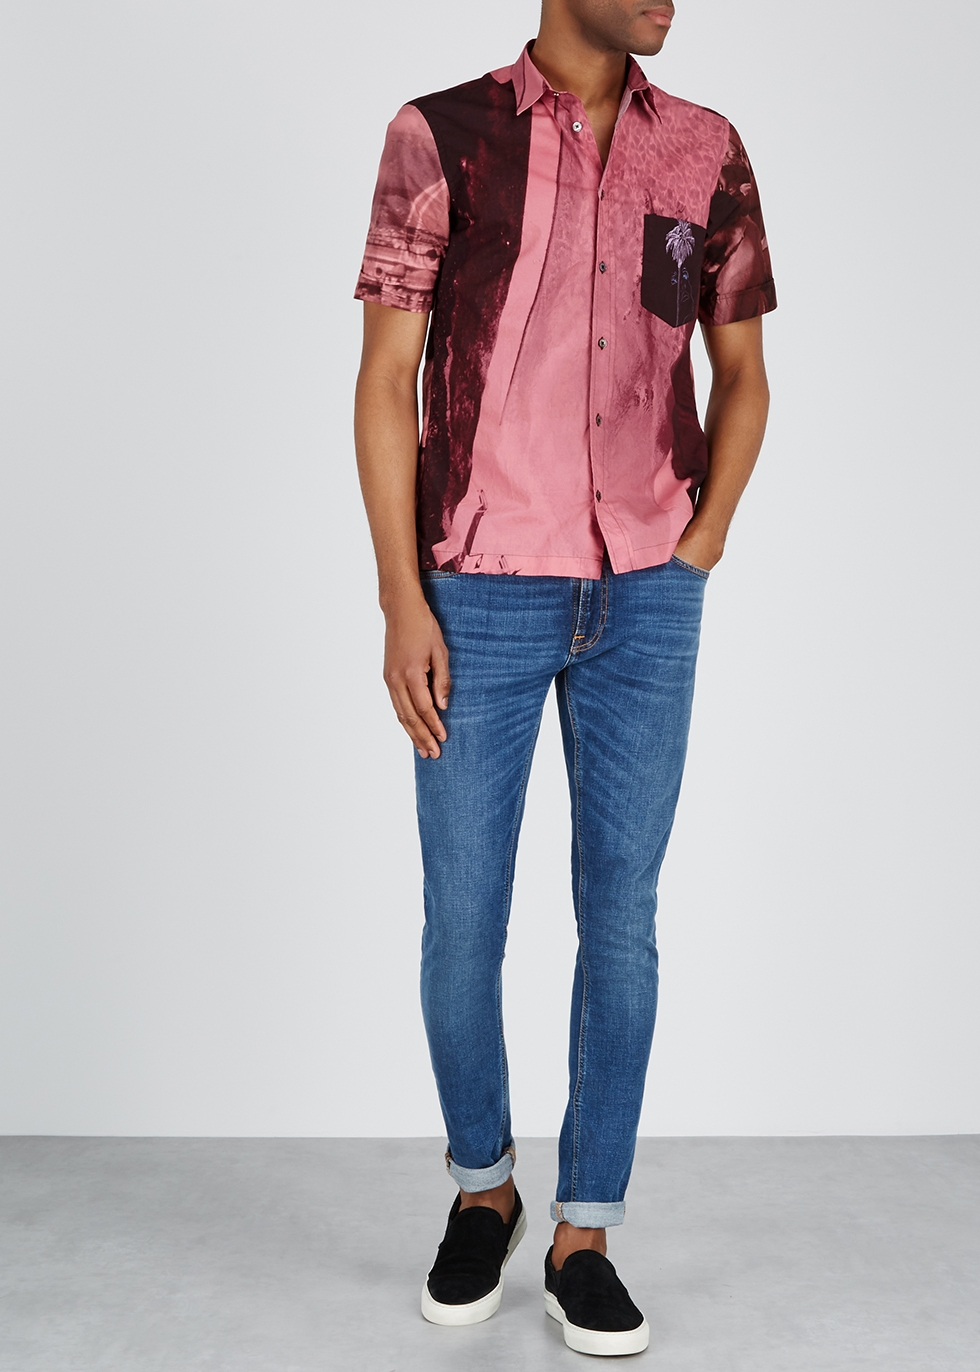 Pink printed cotton shirt - Paul Smith